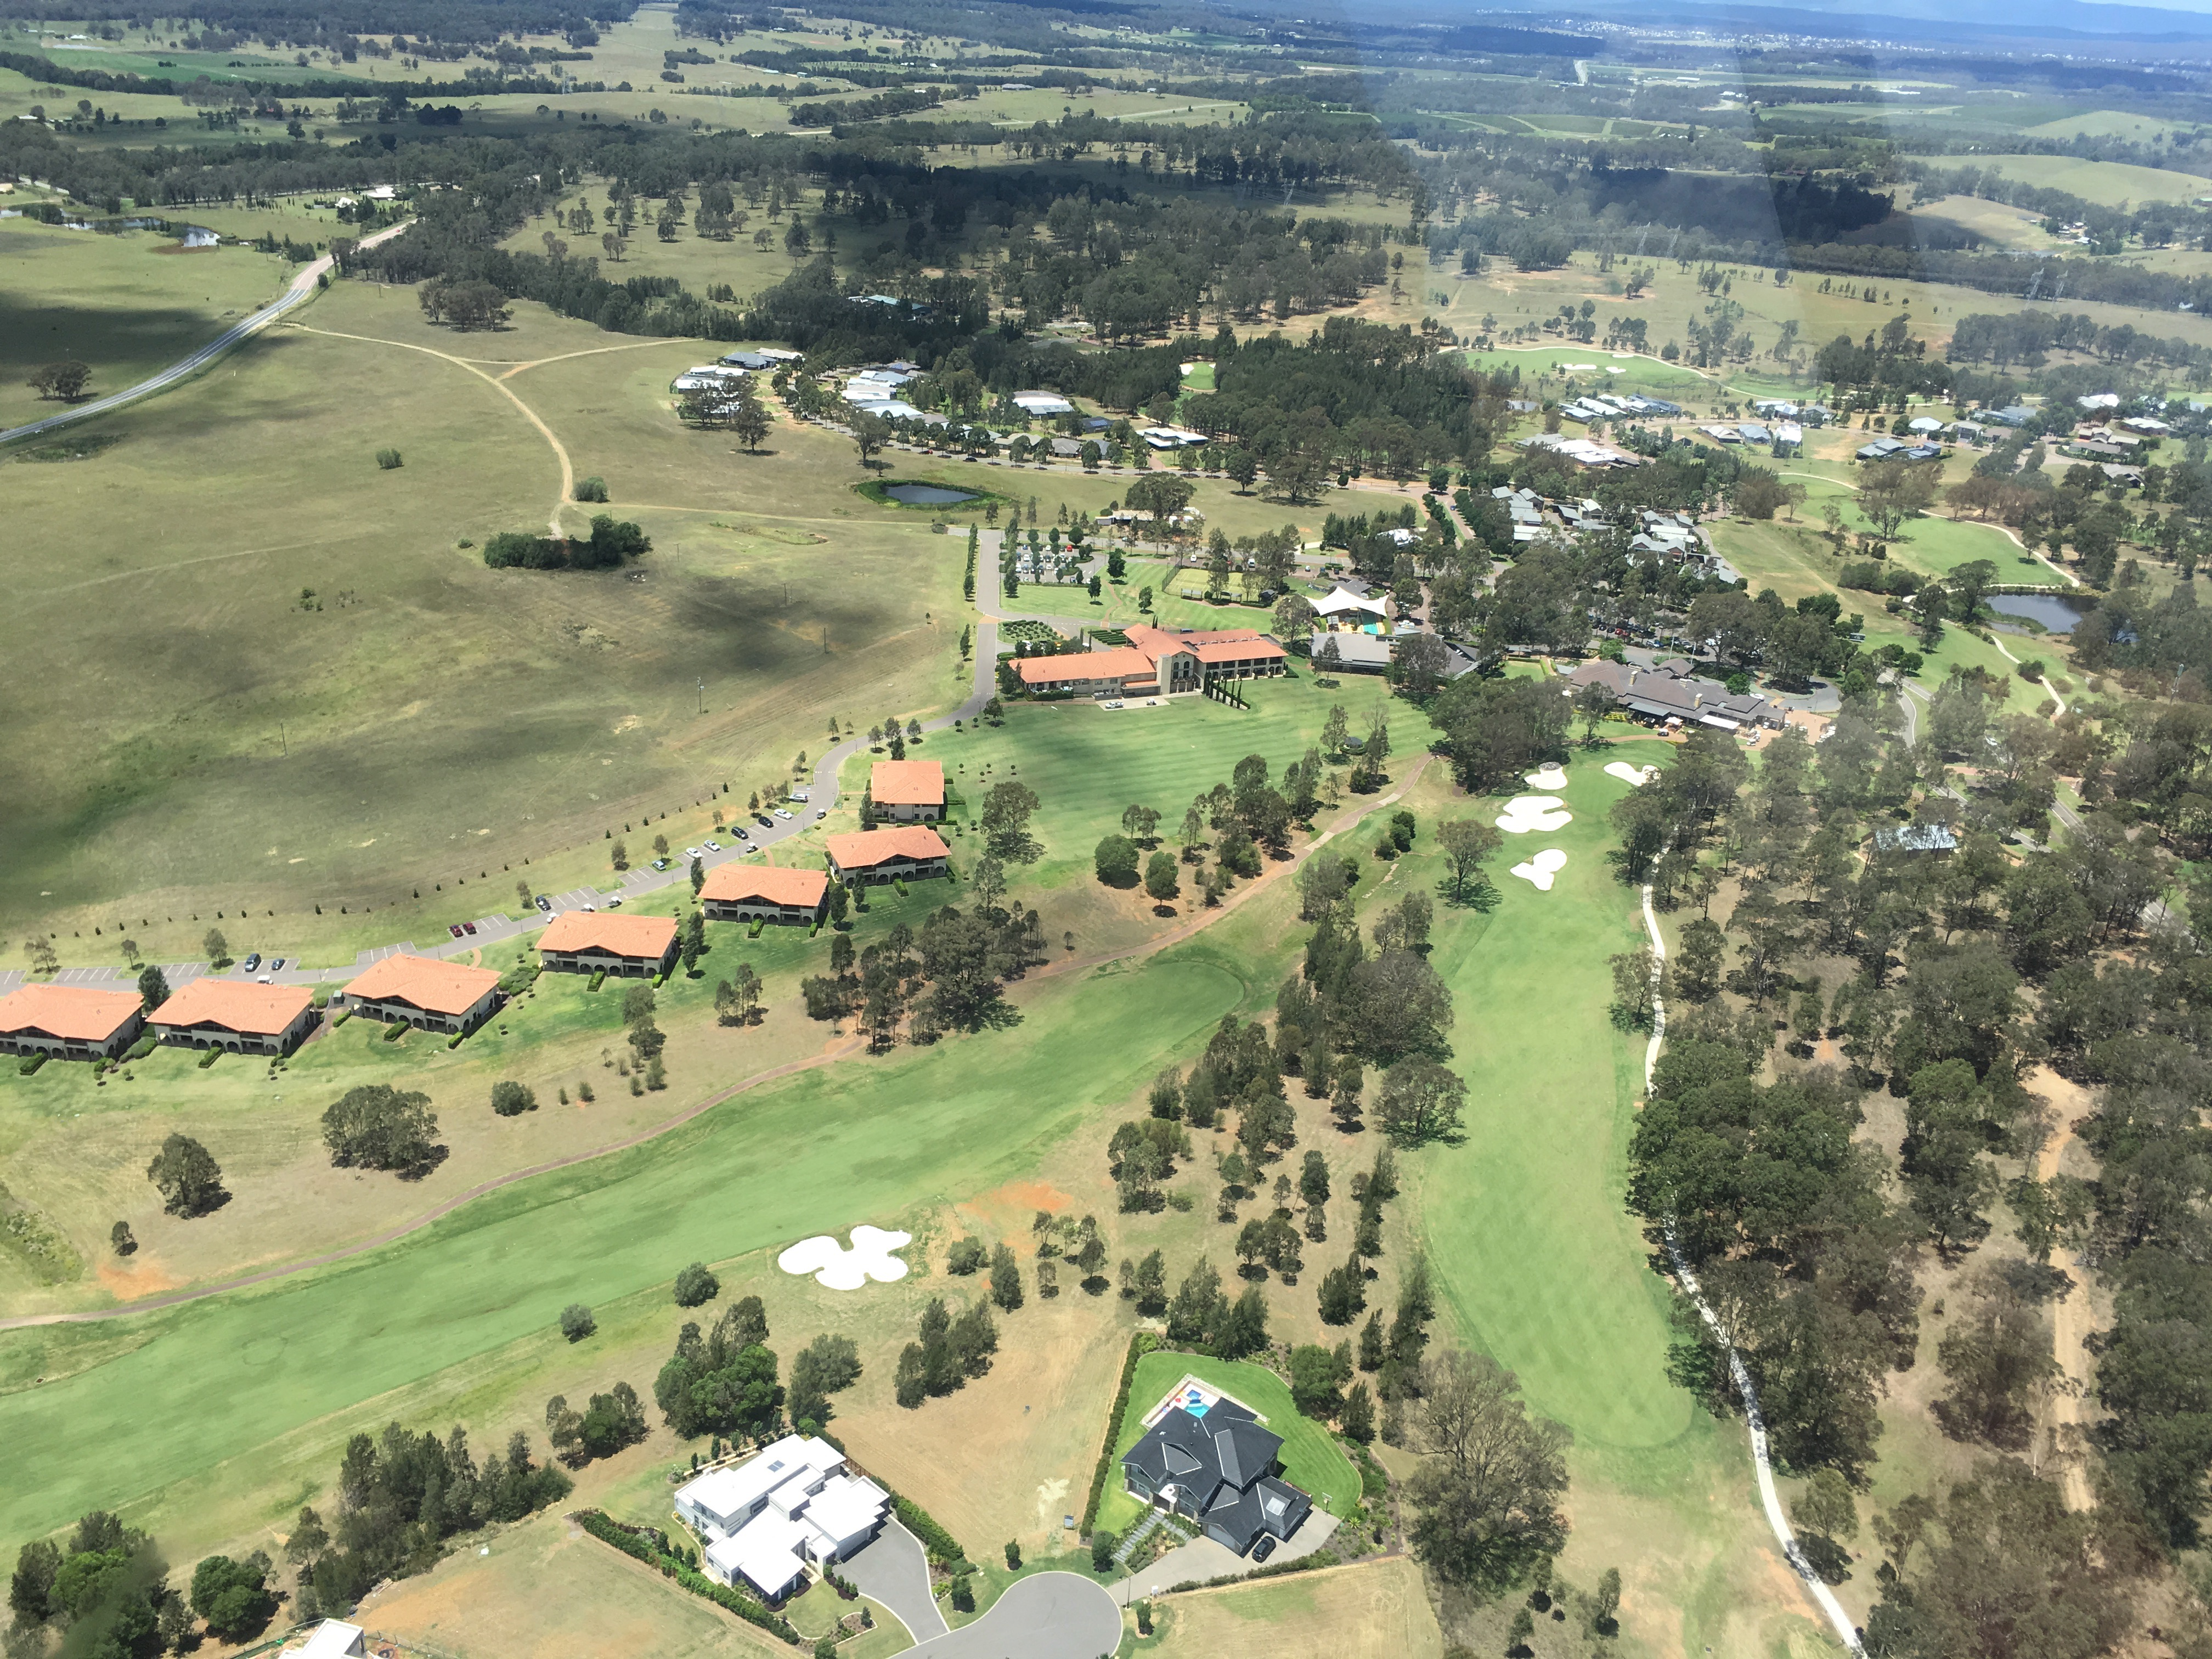 45 Minute Hunter Valley Helicopter Flight  Helicopter Charter Flights